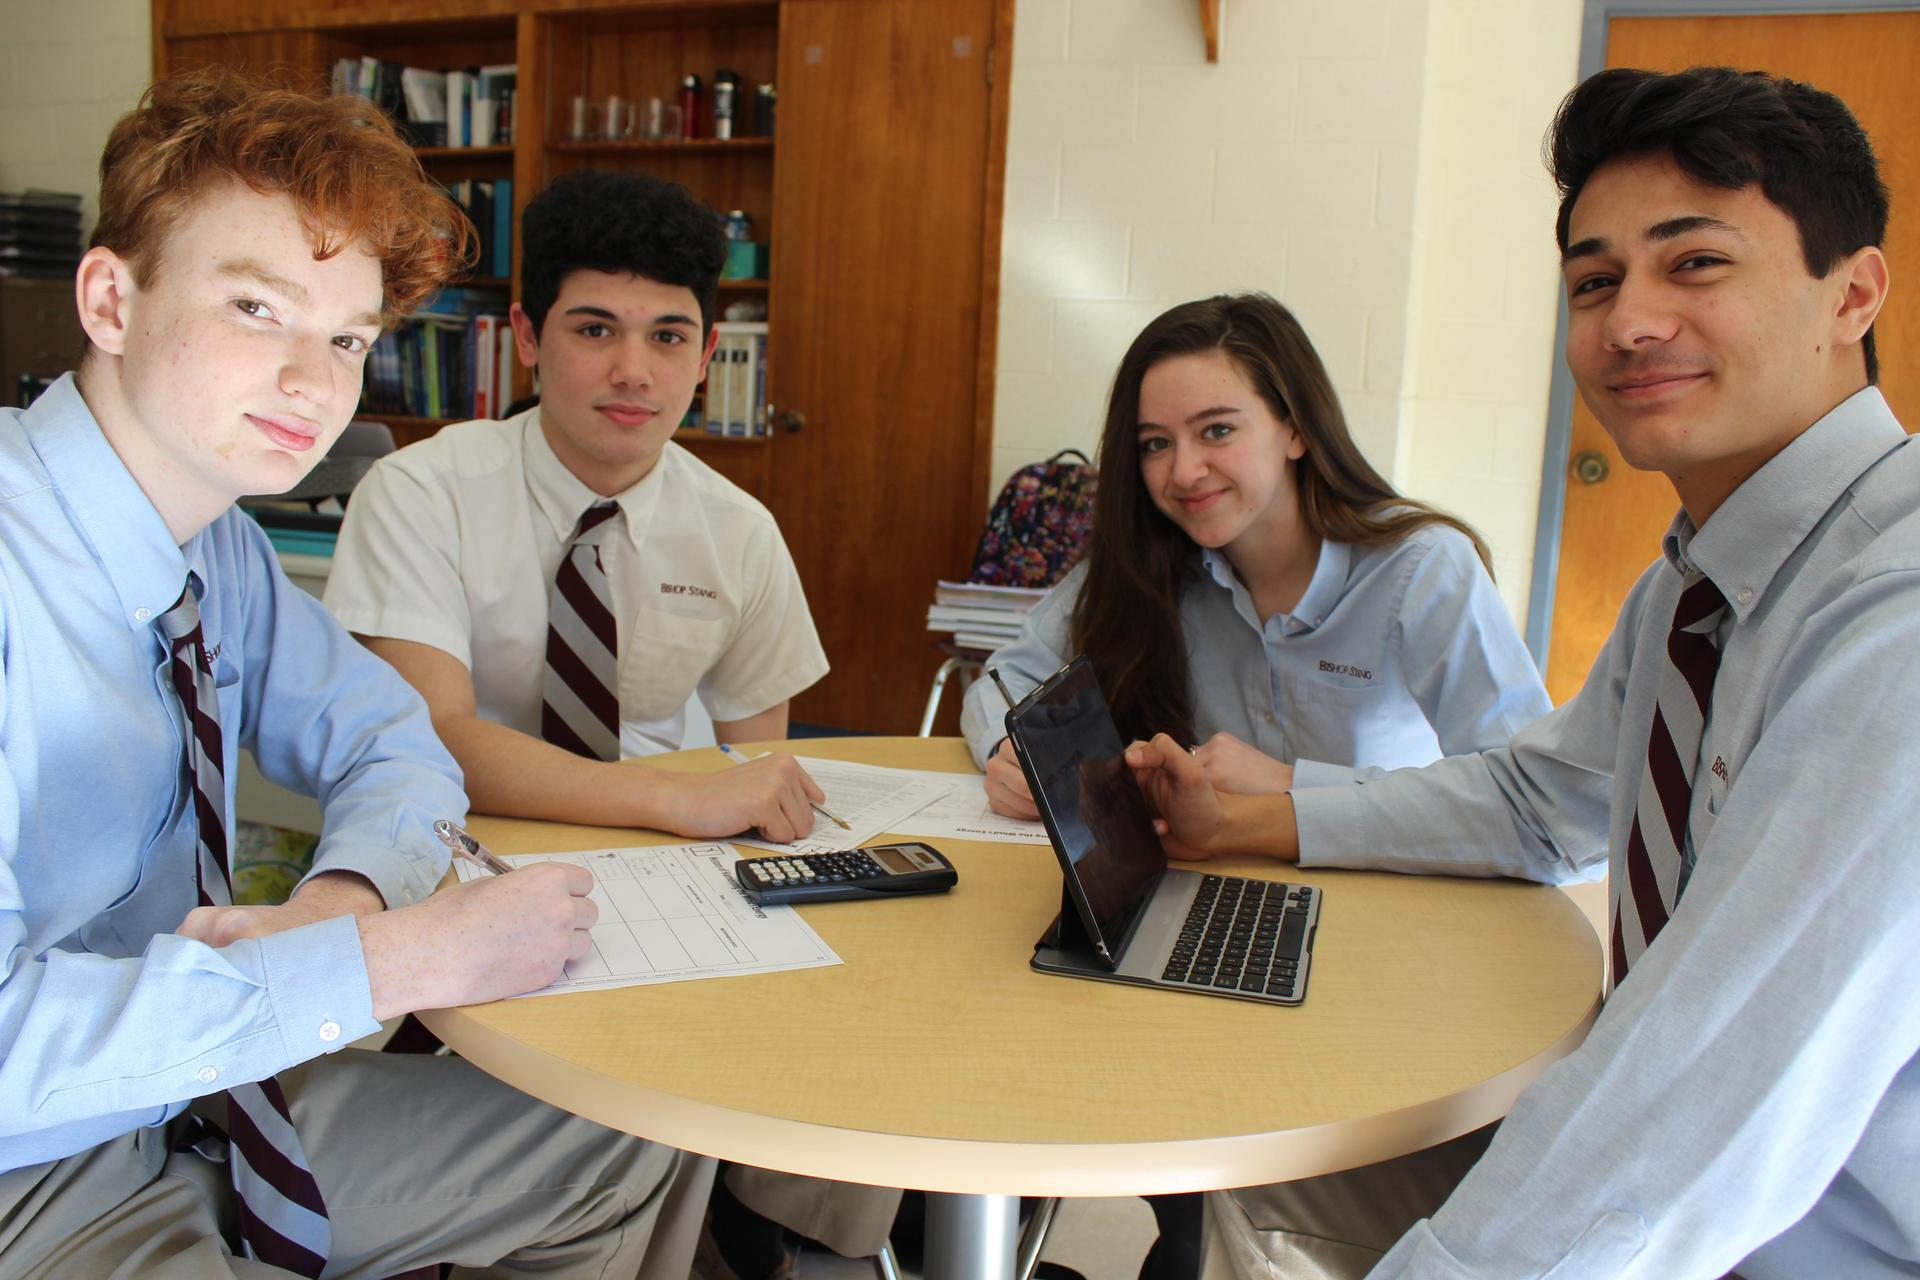 student studying together at a table